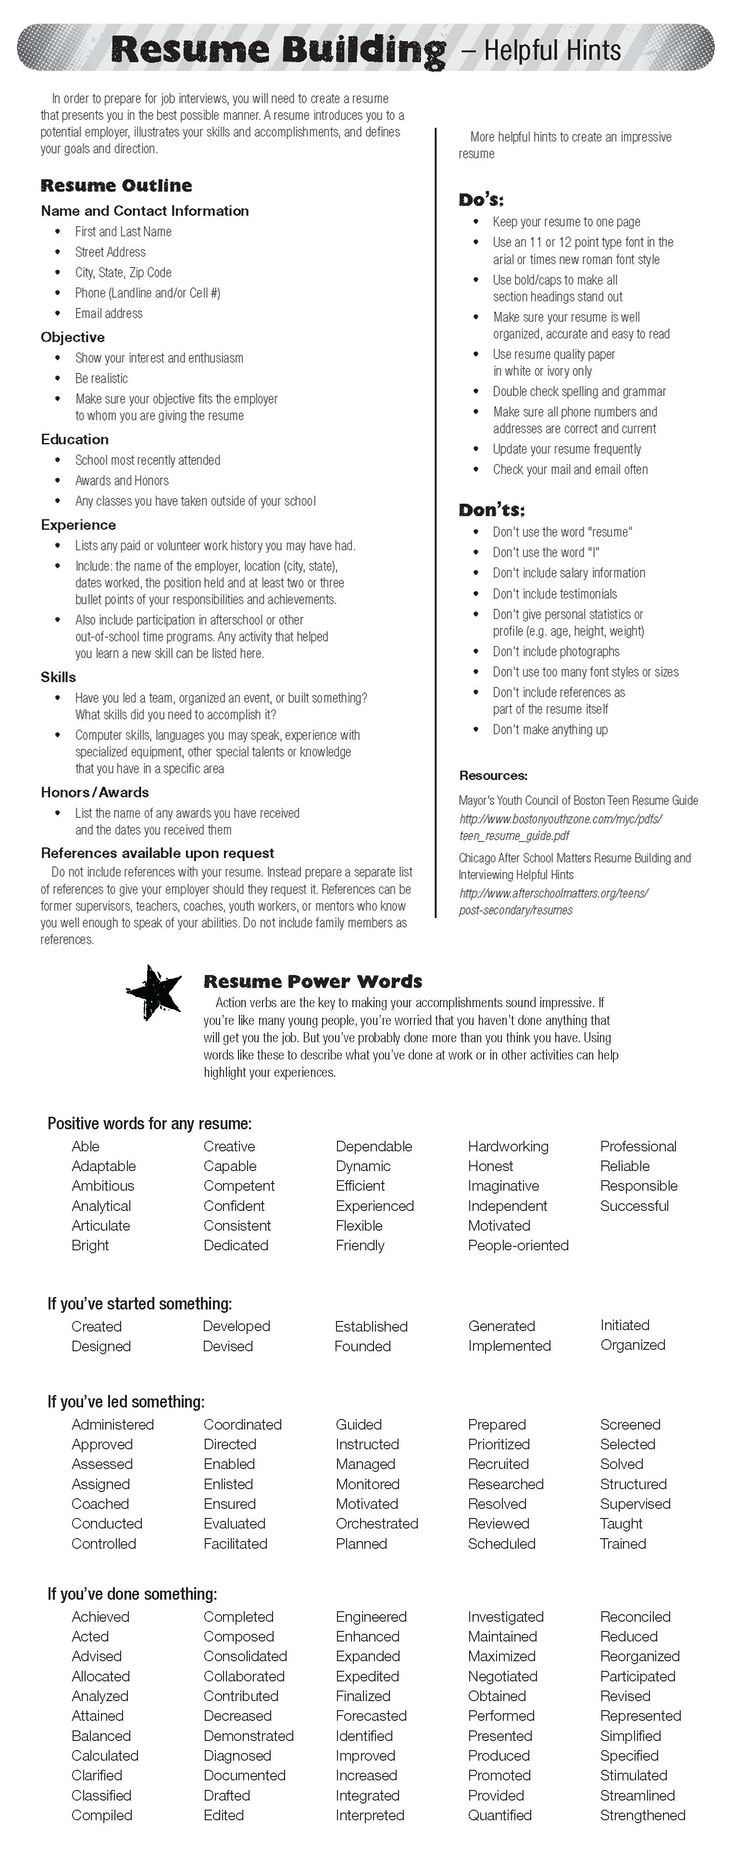 Opposenewapstandardsus  Ravishing  Ideas About Resume On Pinterest  Cv Format Resume Cv And  With Exciting  Ideas About Resume On Pinterest  Cv Format Resume Cv And Resume Templates With Lovely Resume For Volunteer Work Also Writing Skills On Resume In Addition Restaurant Management Resume And Build A Free Resume Online As Well As Resumes On Microsoft Word Additionally Sample Email To Send Resume From Pinterestcom With Opposenewapstandardsus  Exciting  Ideas About Resume On Pinterest  Cv Format Resume Cv And  With Lovely  Ideas About Resume On Pinterest  Cv Format Resume Cv And Resume Templates And Ravishing Resume For Volunteer Work Also Writing Skills On Resume In Addition Restaurant Management Resume From Pinterestcom